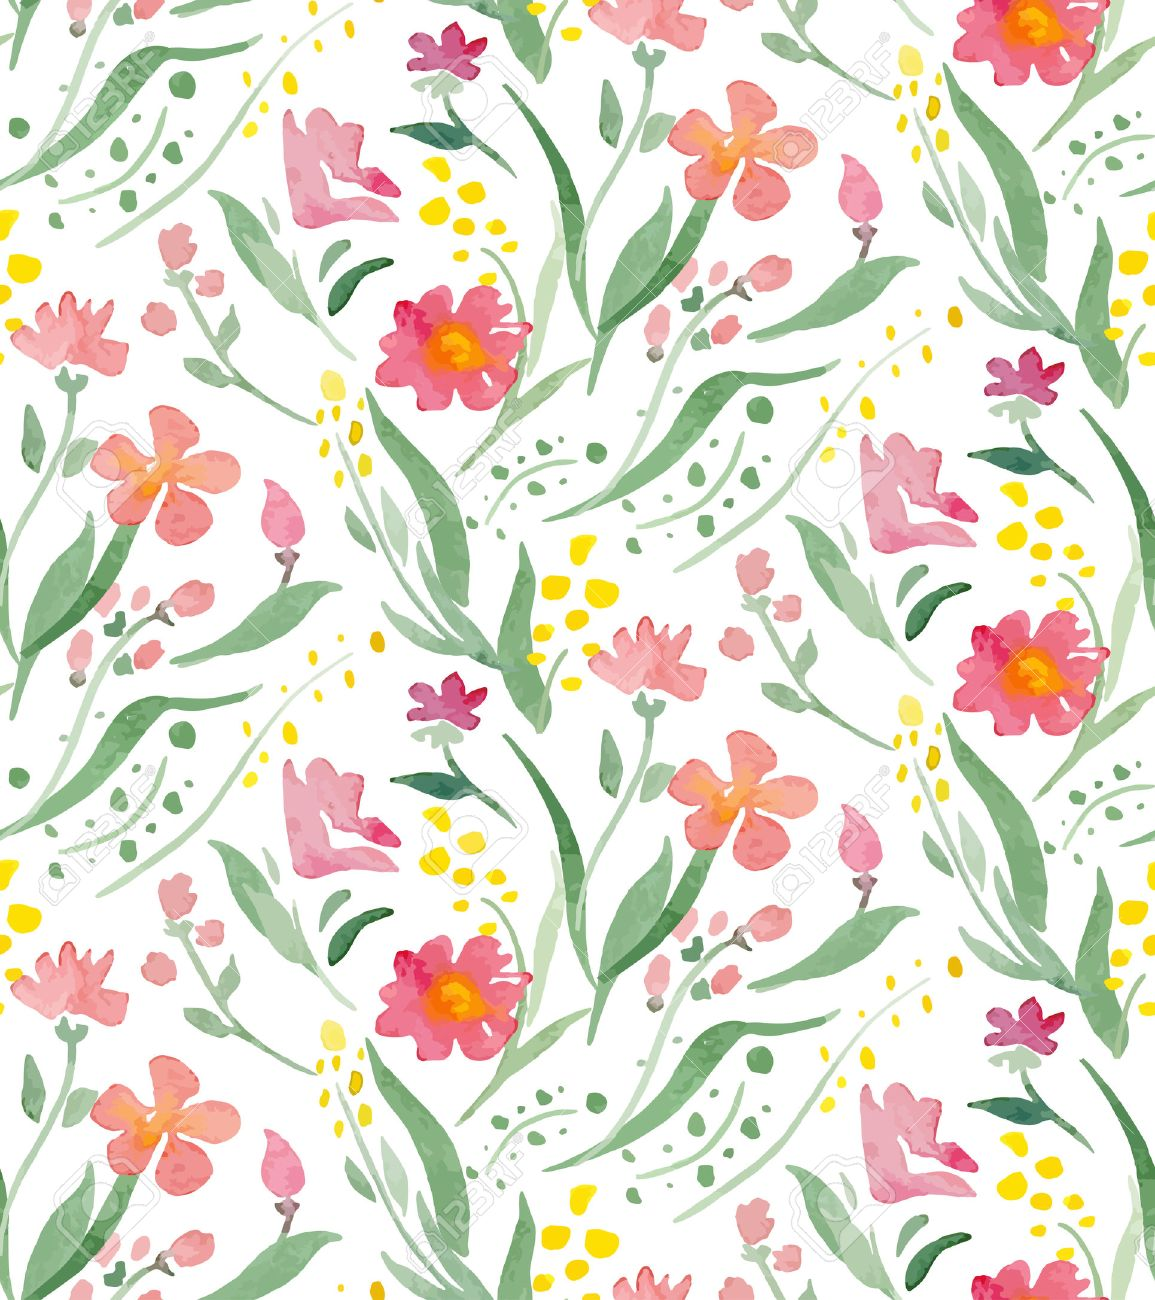 Seamless Pattern With Watercolor Flowers Illustrator Swatch Transparent Background Included Great For Wedding